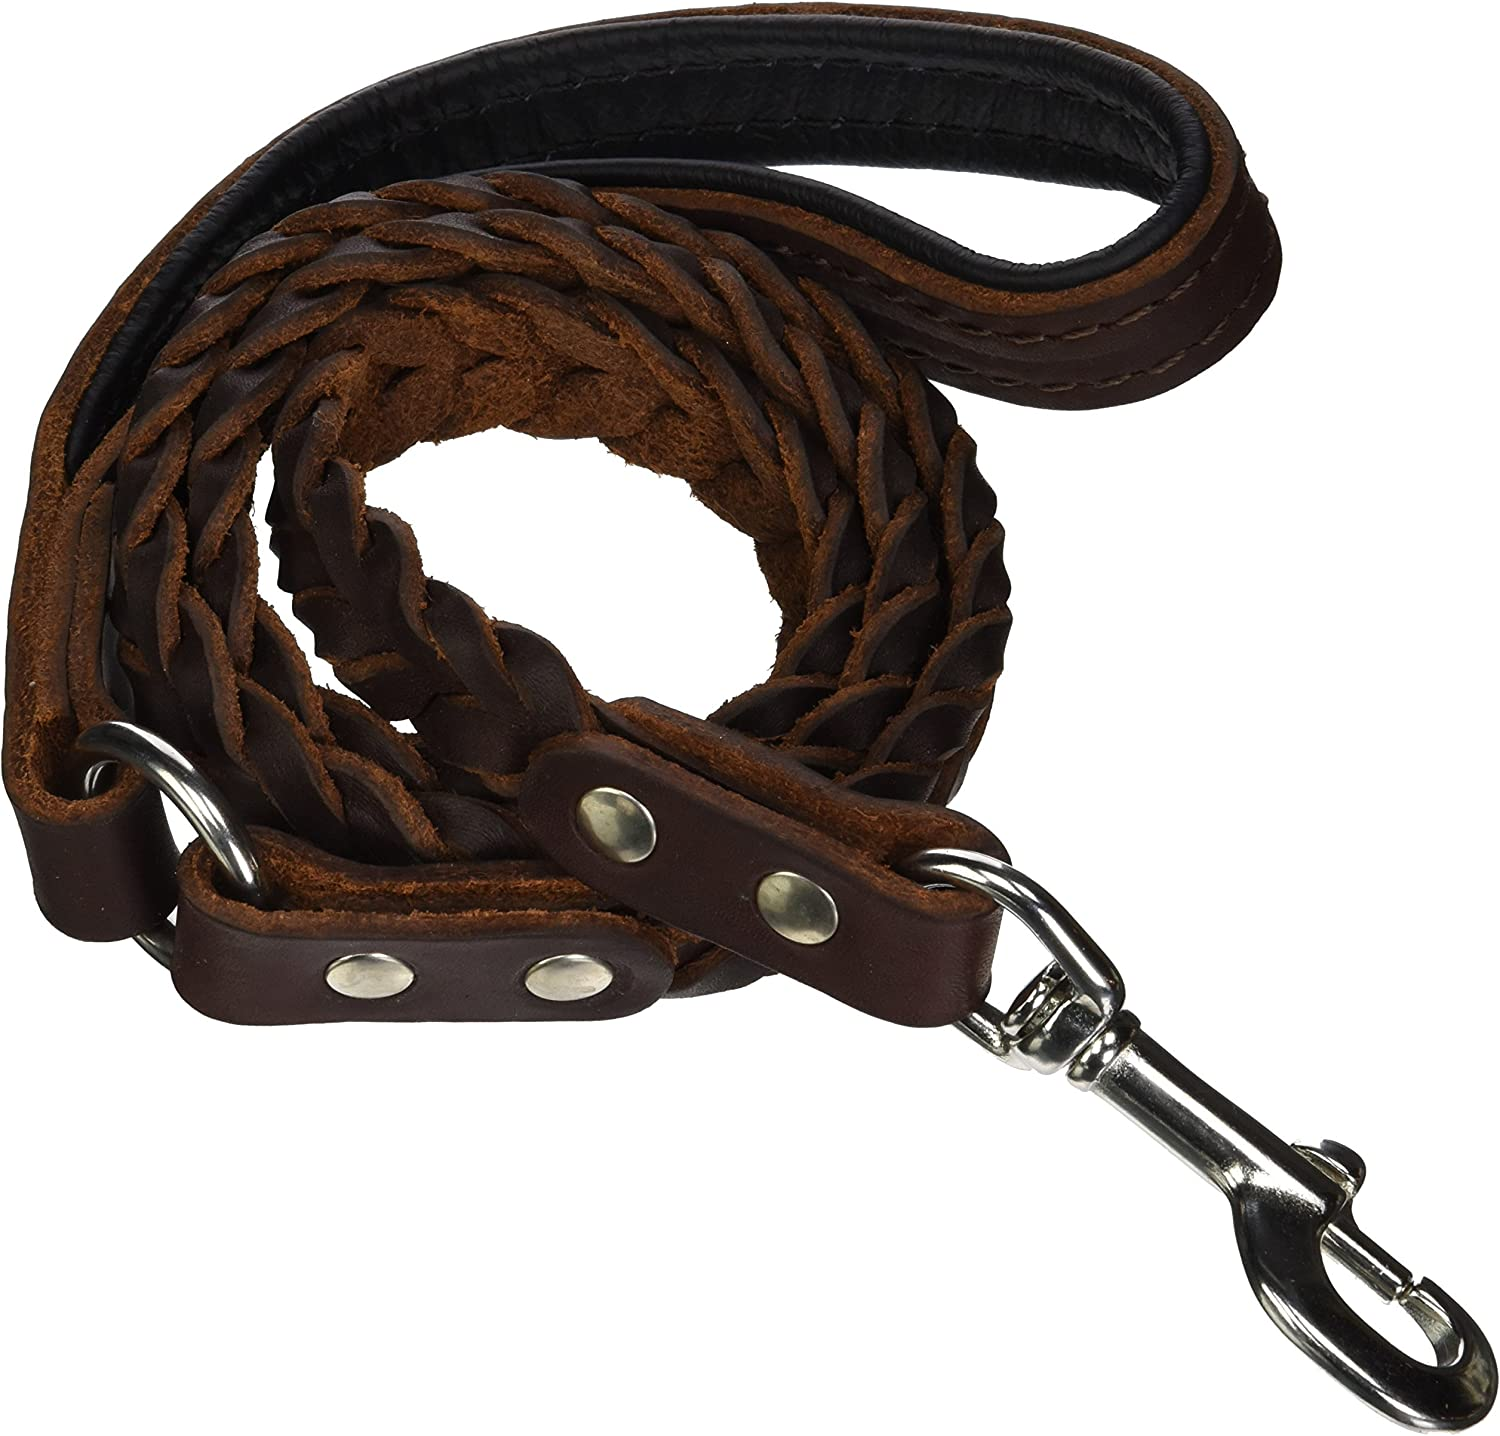 Dean & Tyler Comfort Braid Leather Leash, Brown 4Feet by 3 4Inch Width with Black Padding and Stainless Steel Hardware.